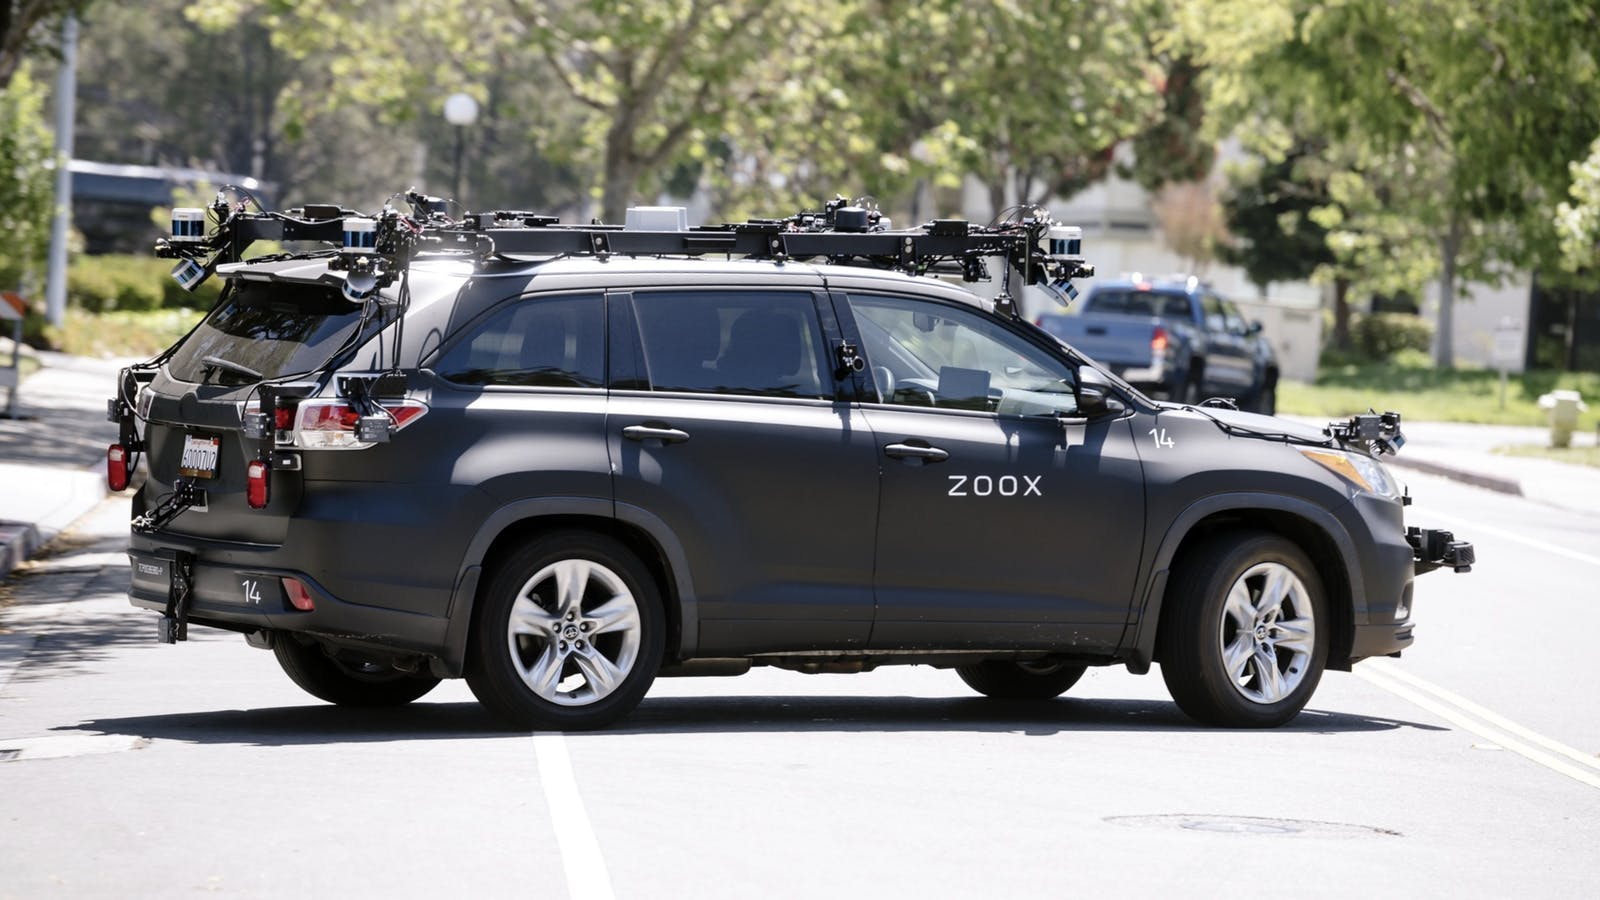 A Zoox self-driving vehicle last month. Photo by Bloomberg